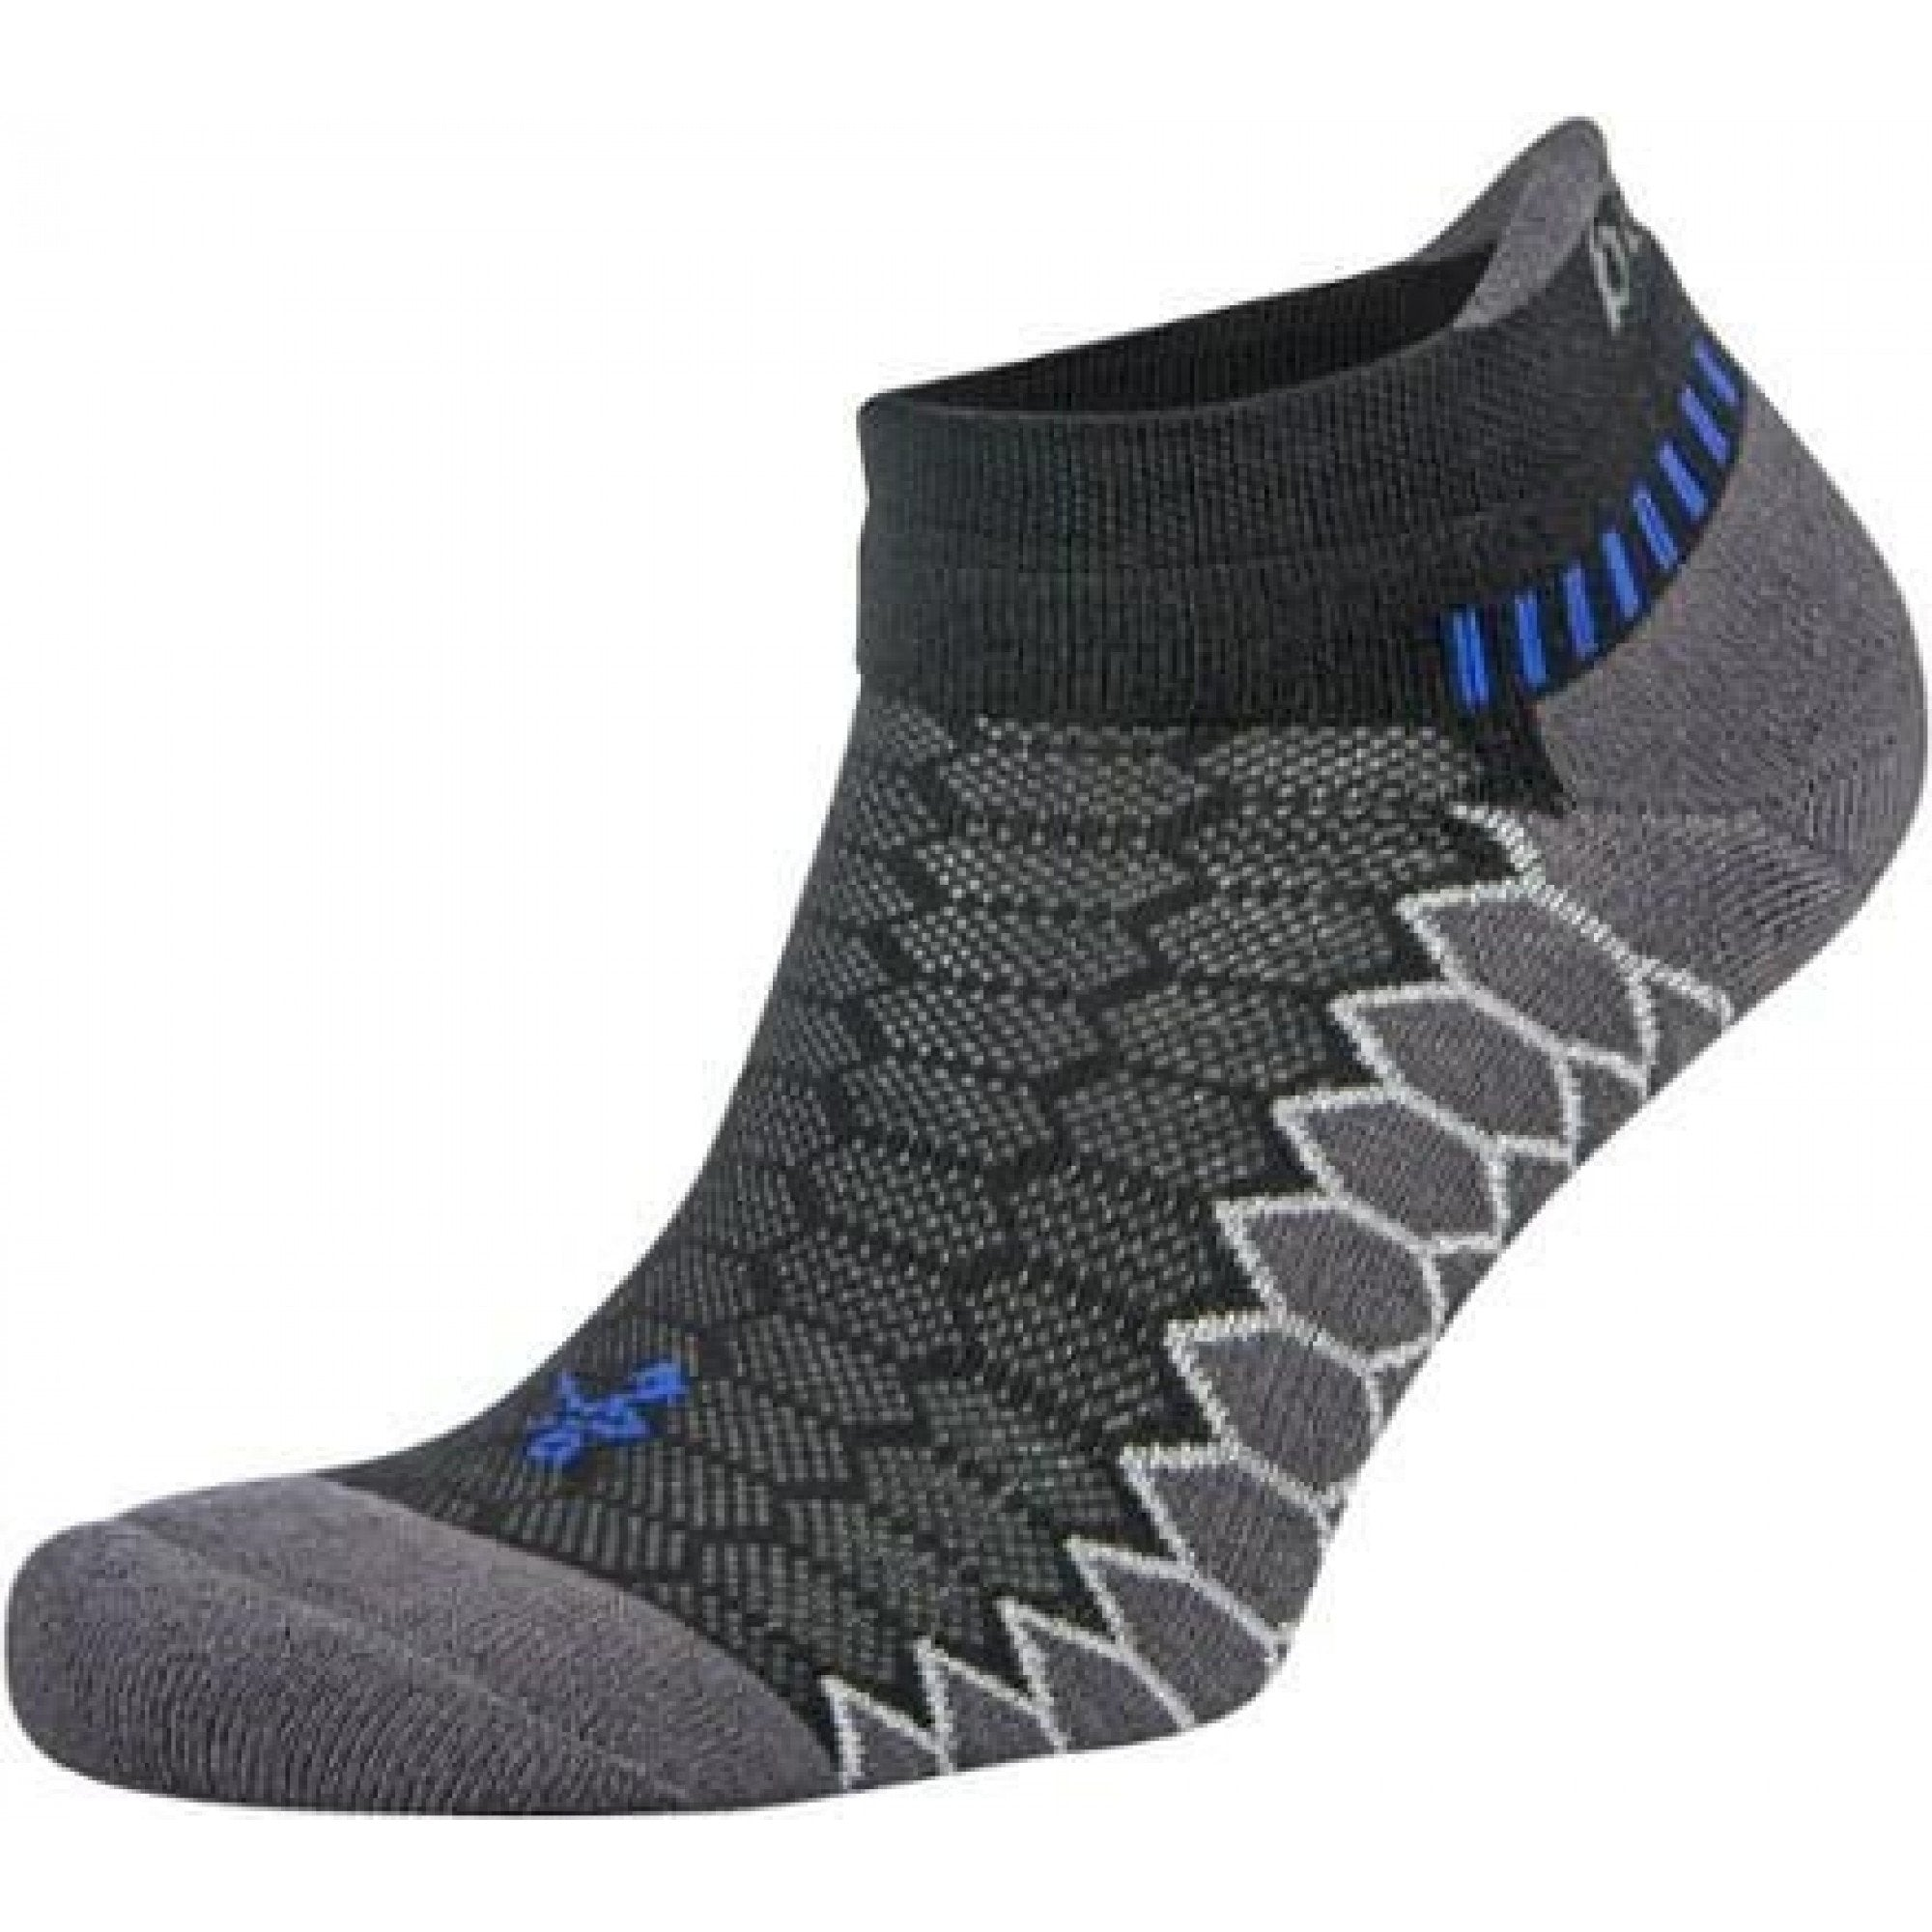 Balega Silver No Show Socks - Sole Motive